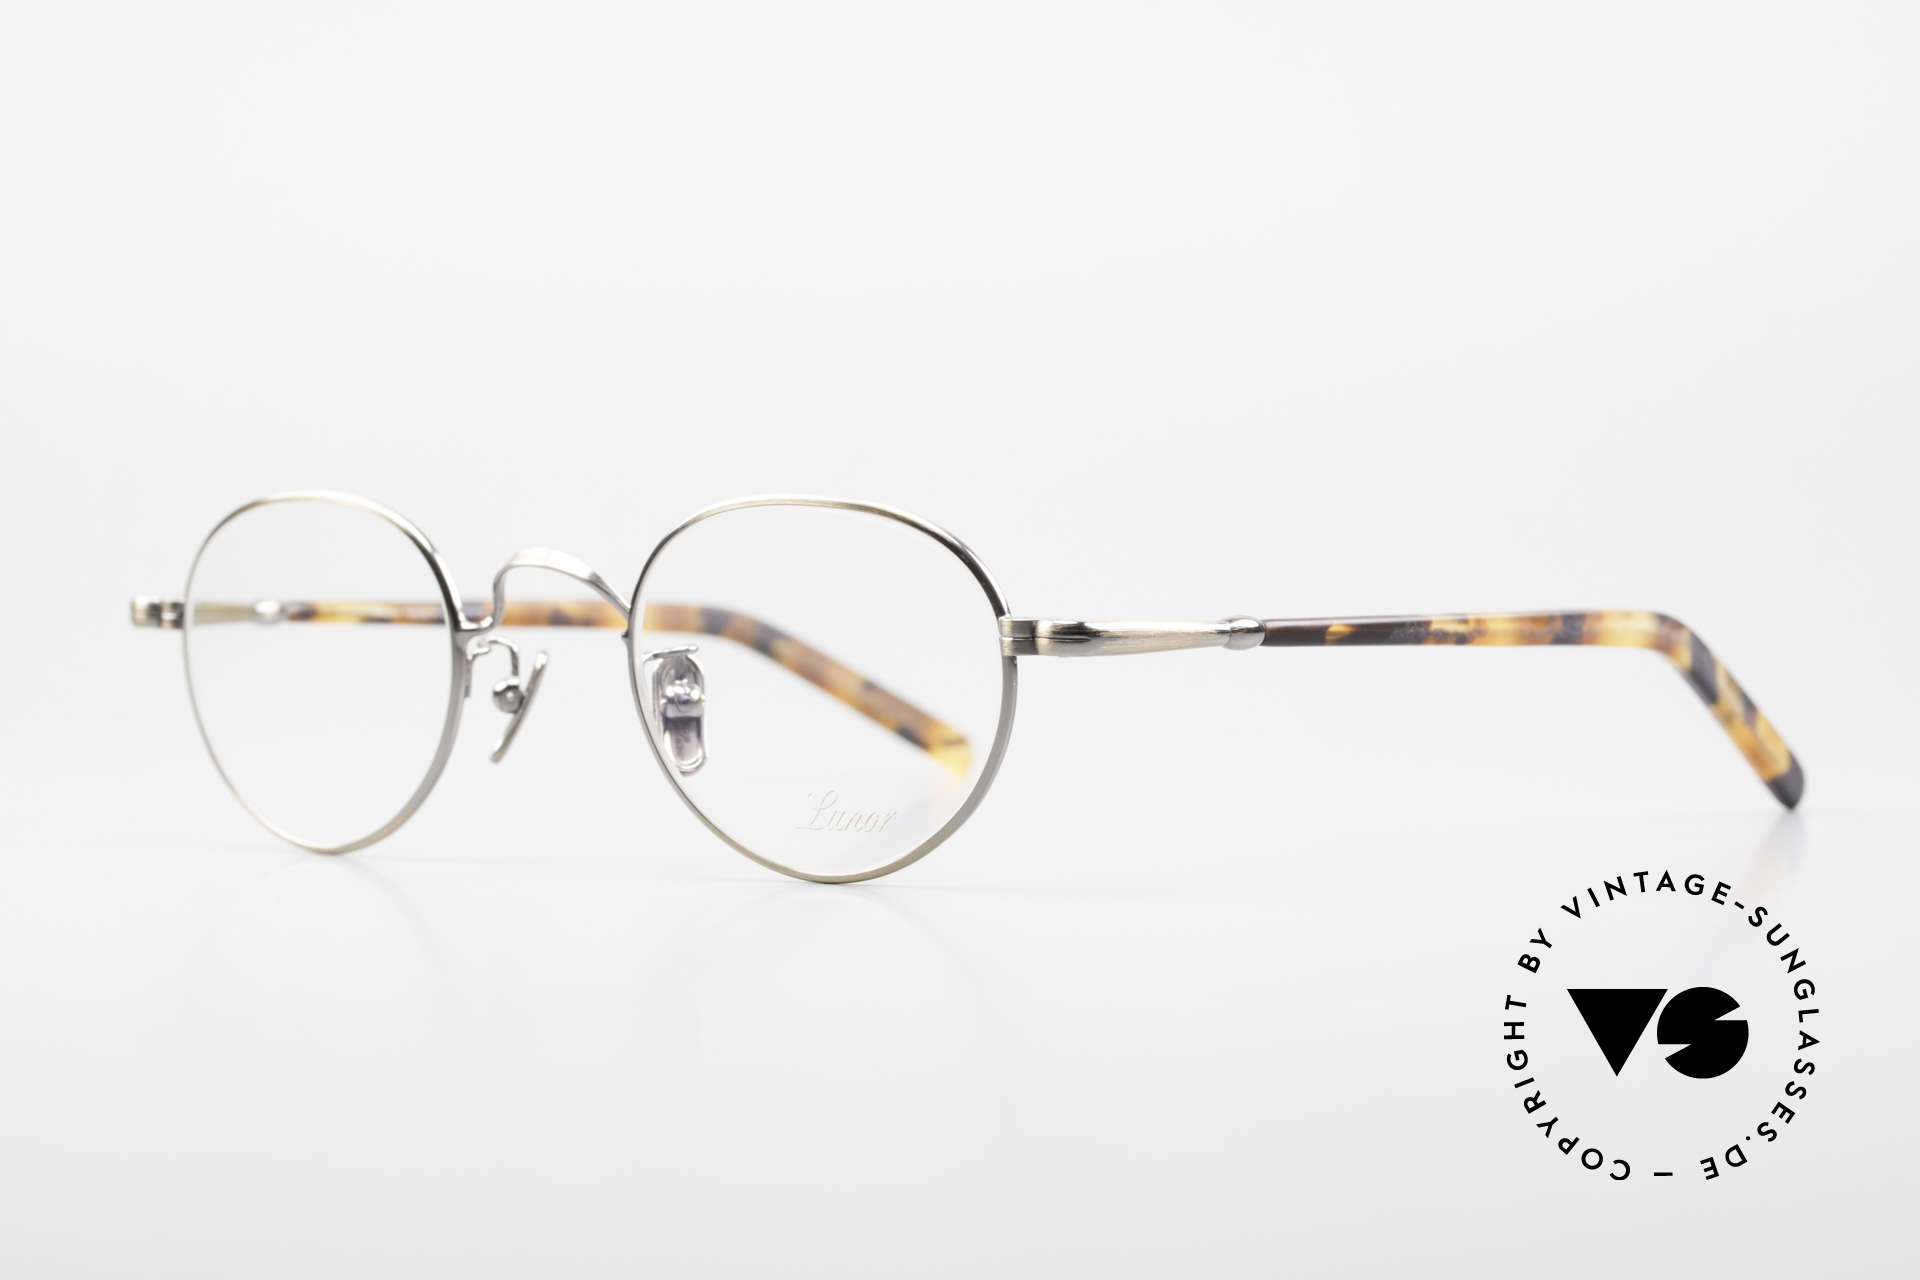 Lunor VA 107 Panto Style Antique Gold AG, without ostentatious logos (but in a timeless elegance), Made for Men and Women